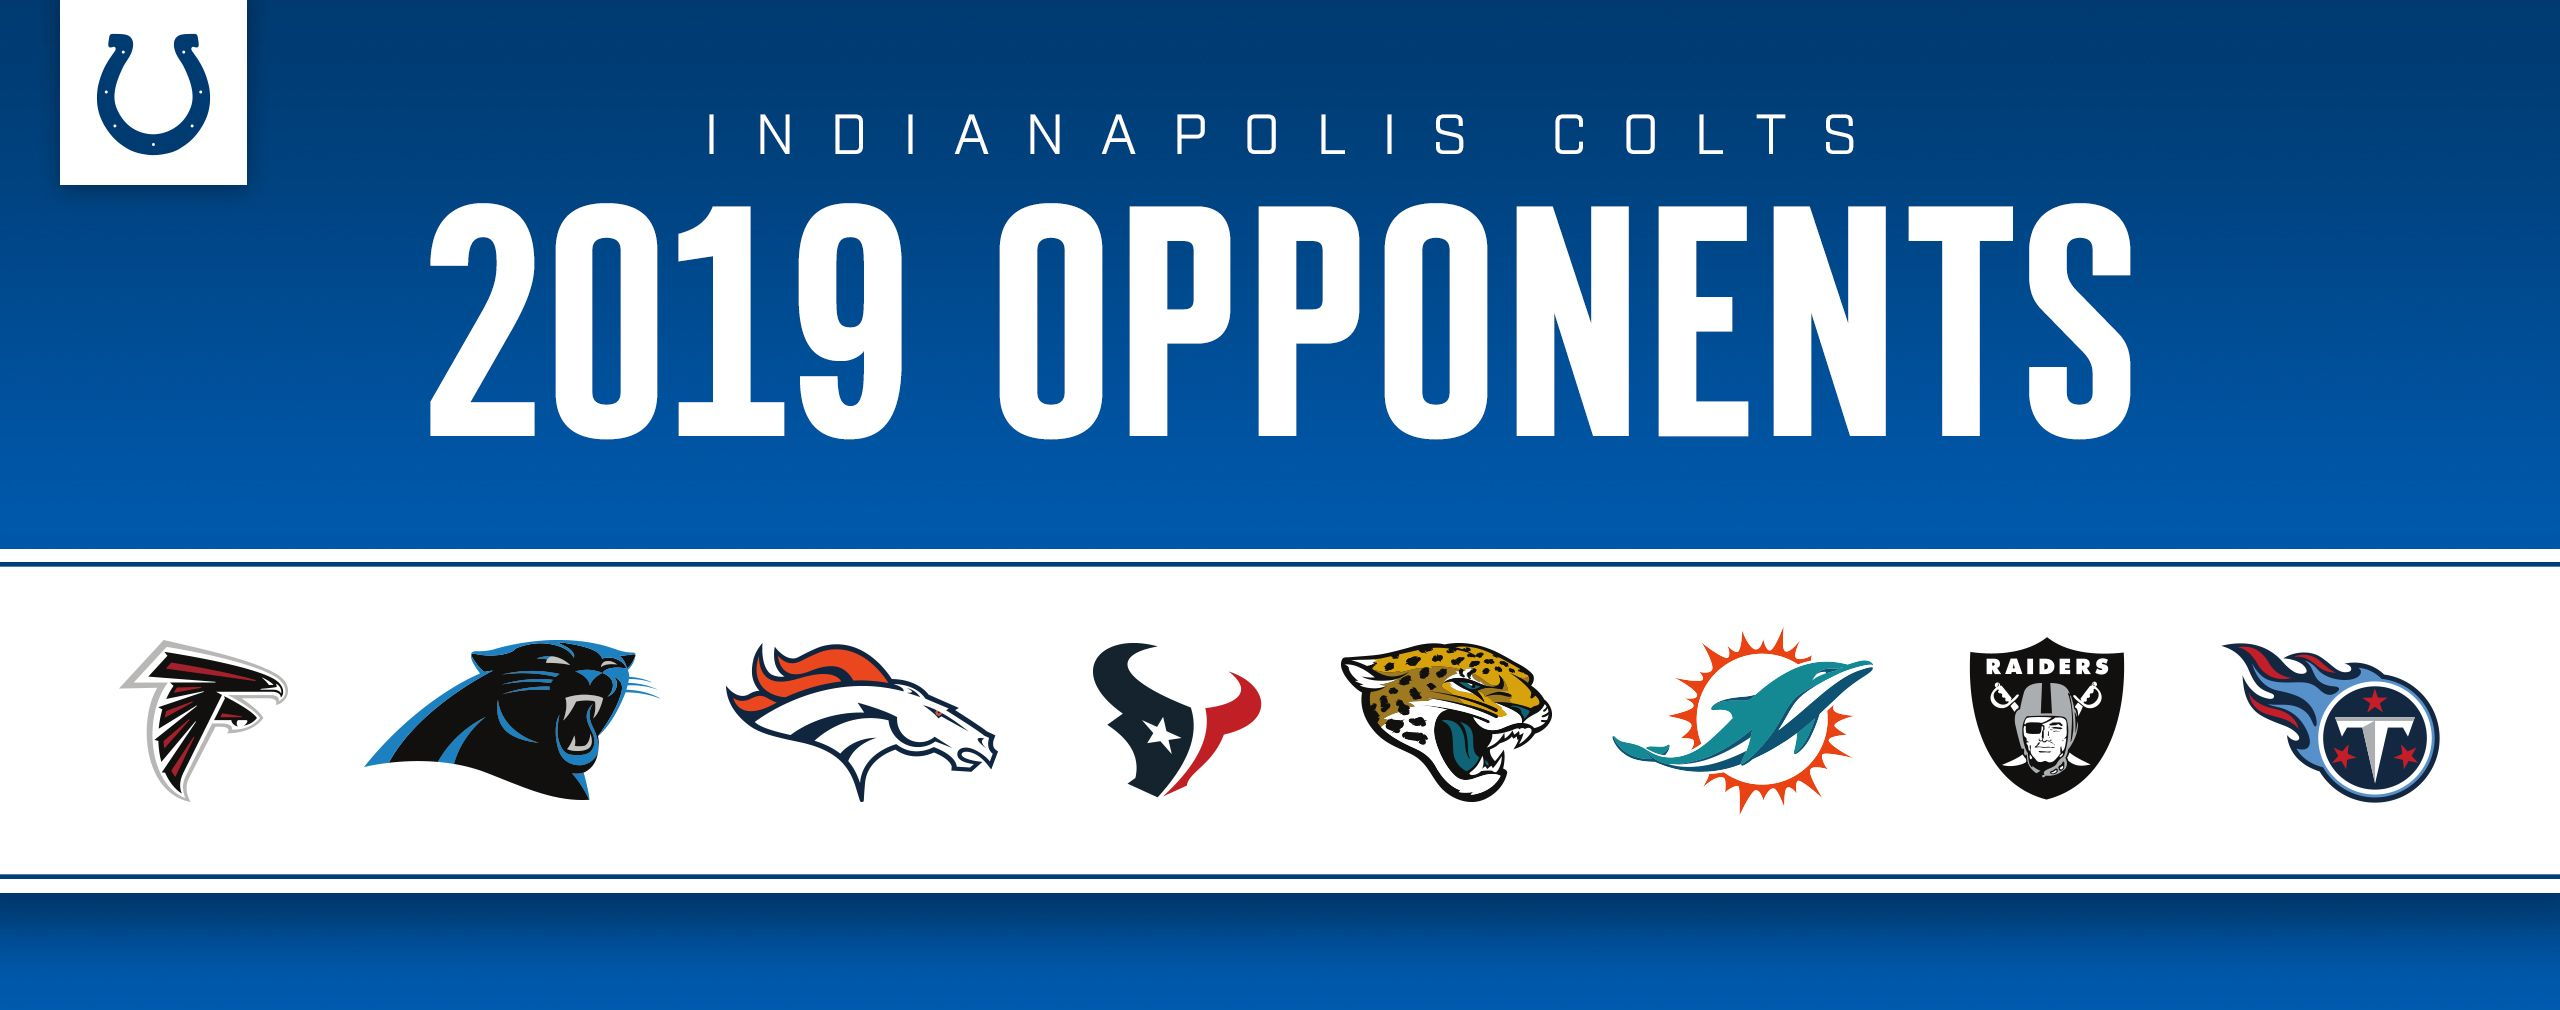 2019_opponents_website